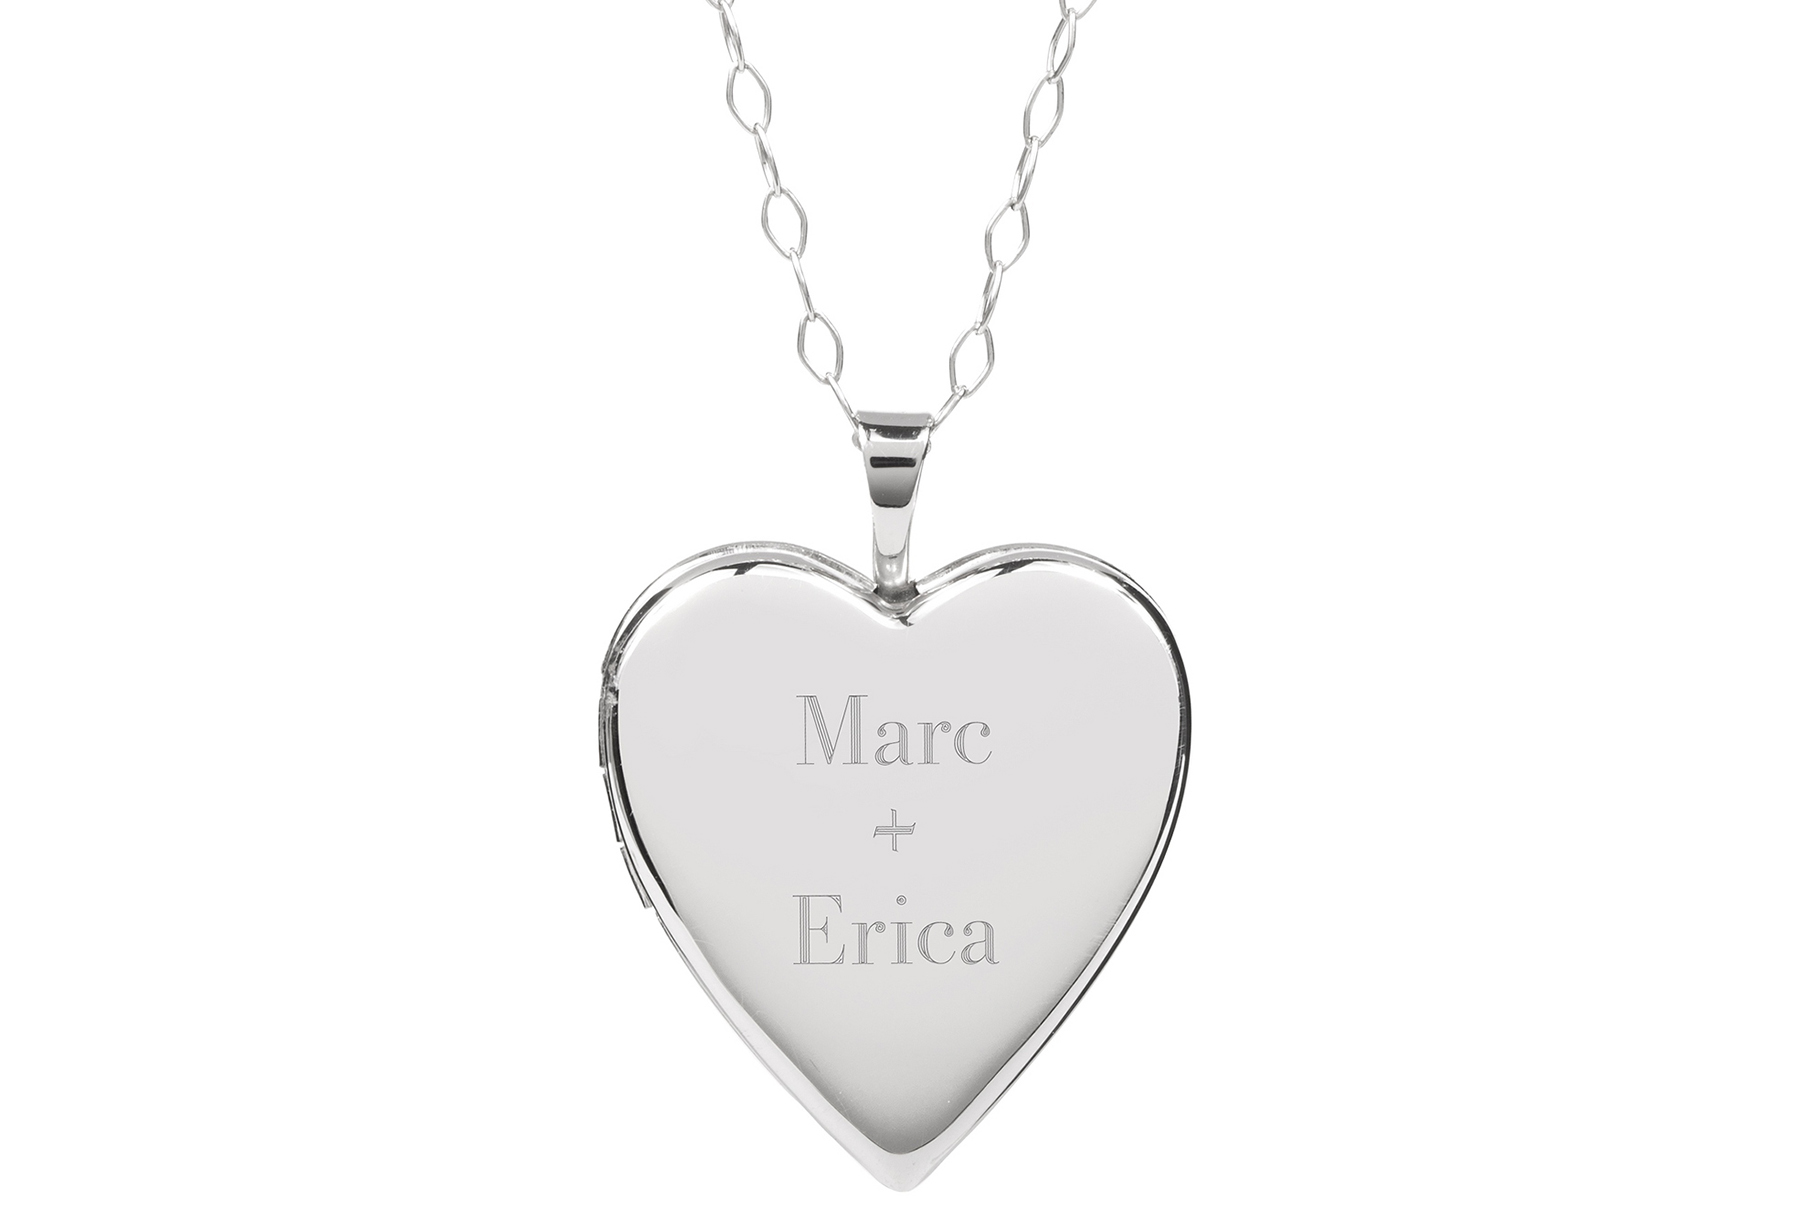 Personalized Heart Locket